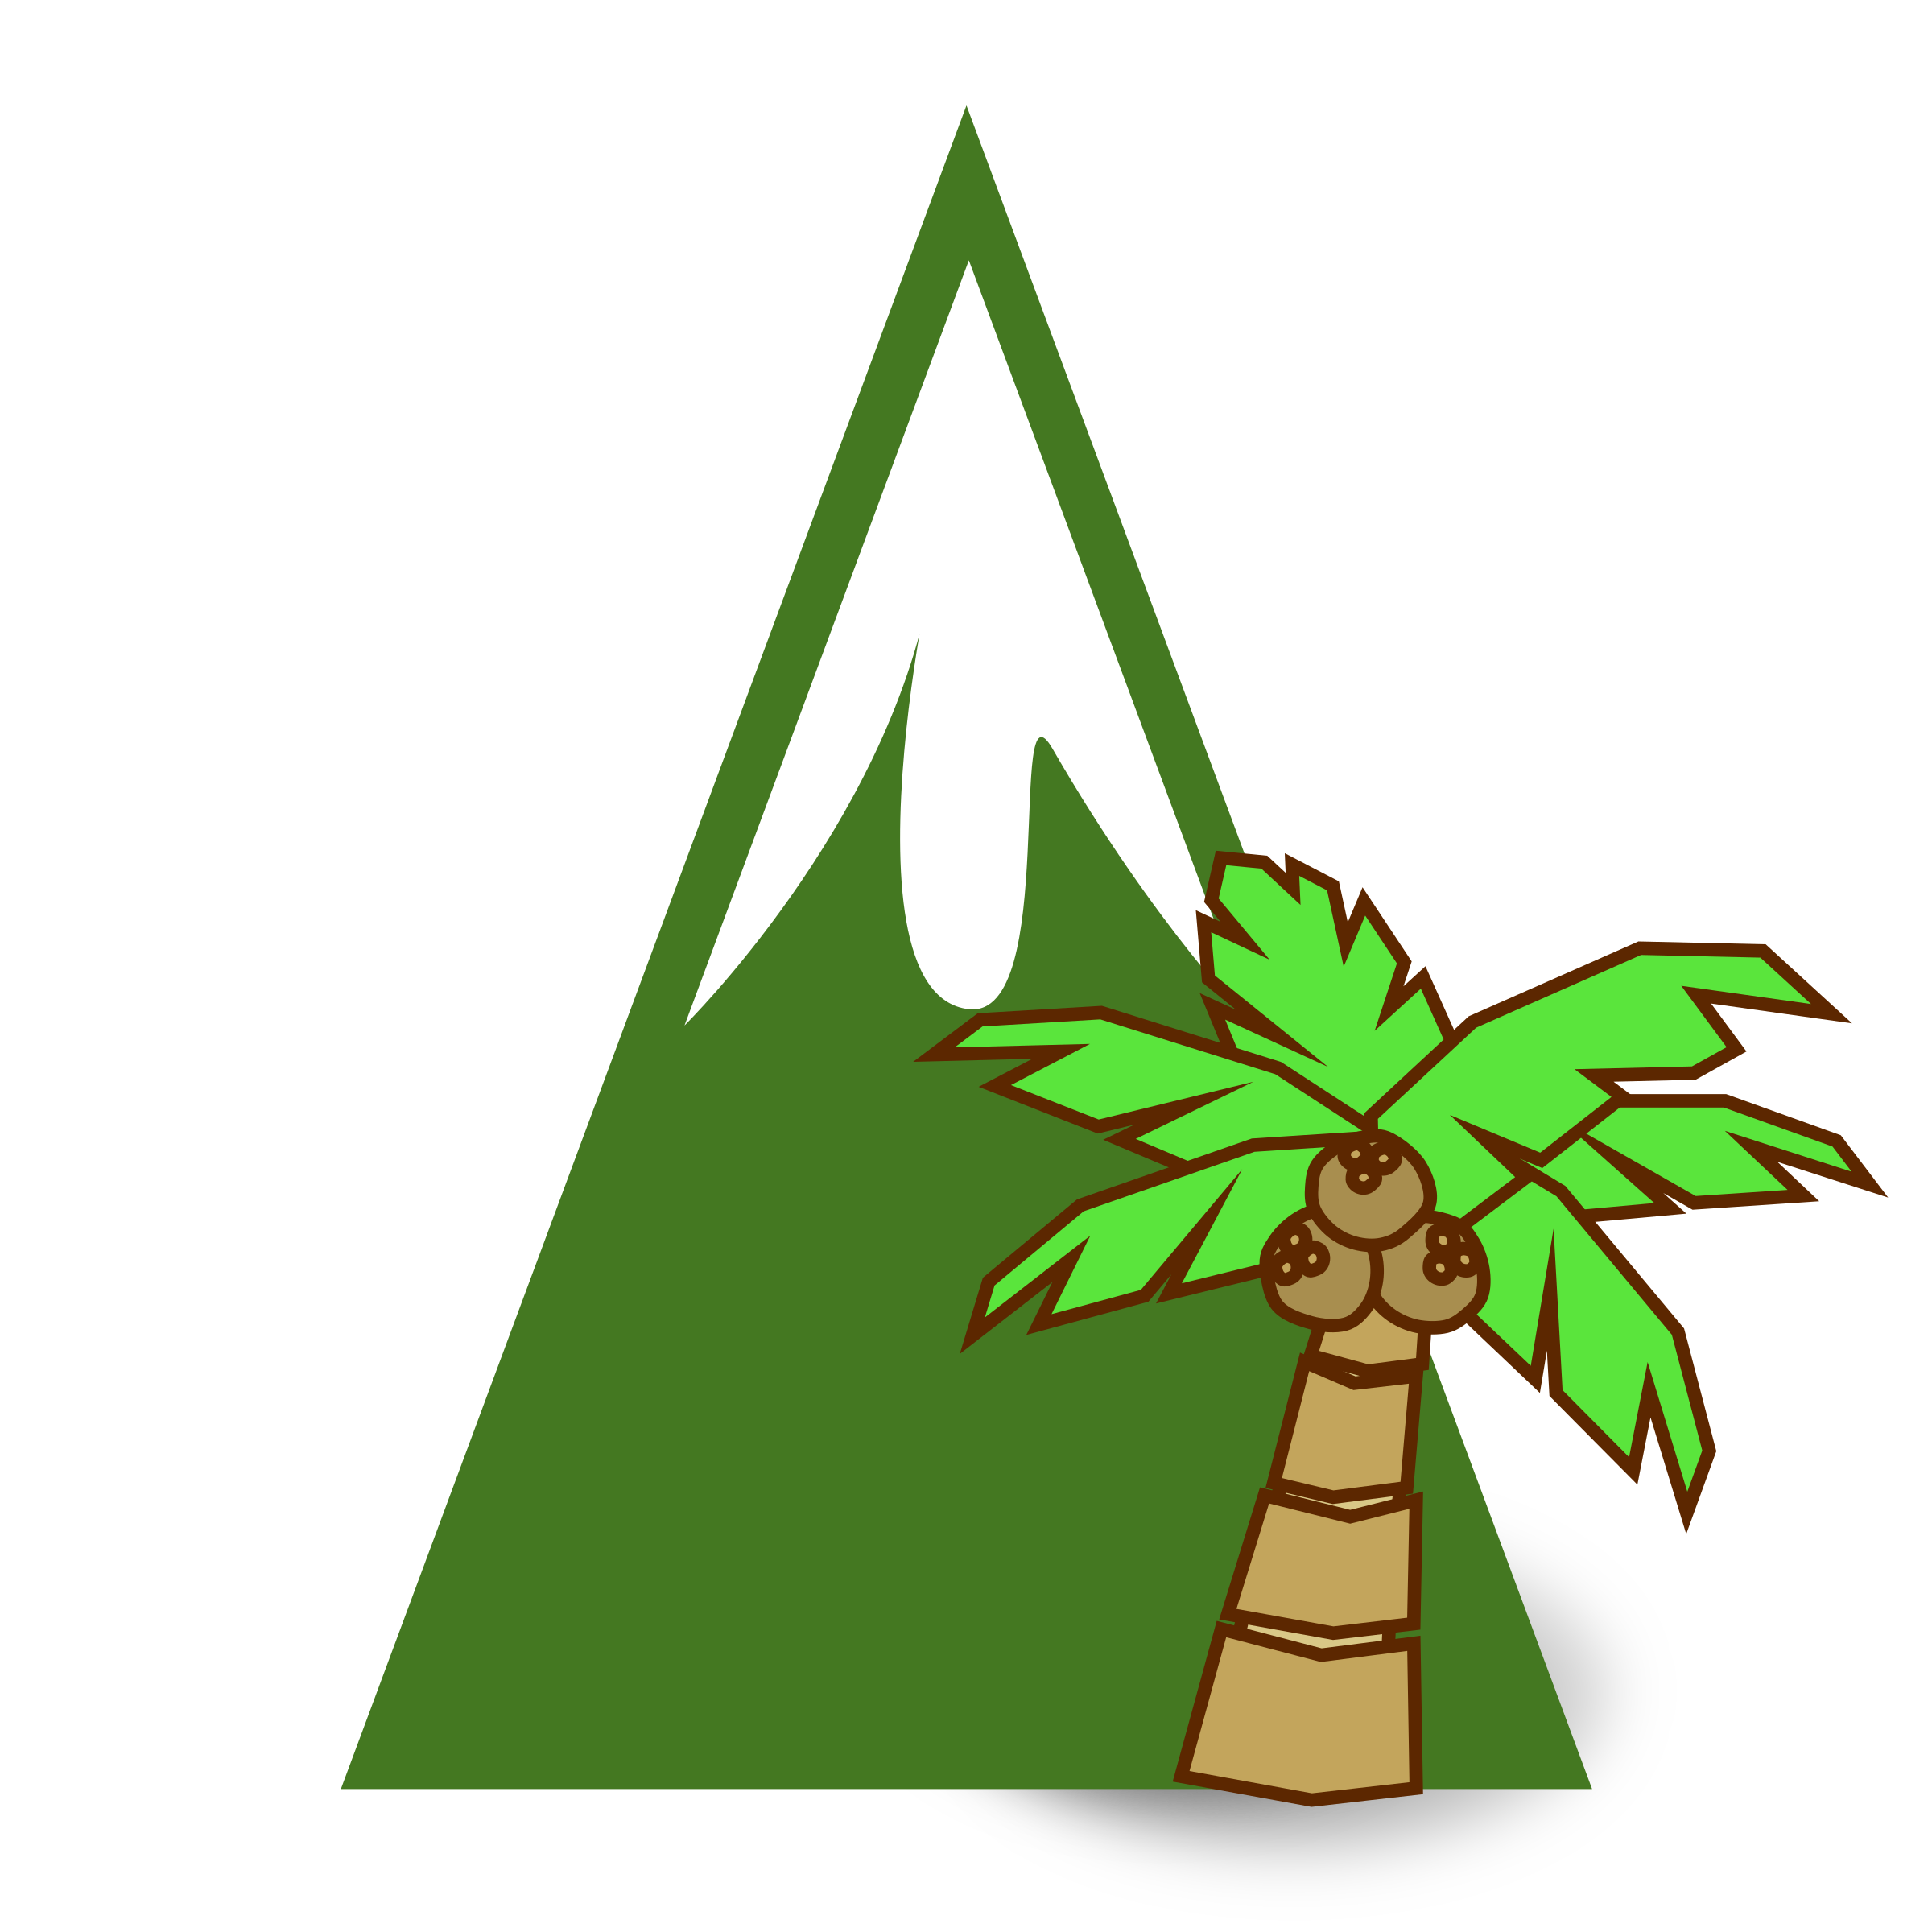 Jungle icons png free. Clipart mountain moutain